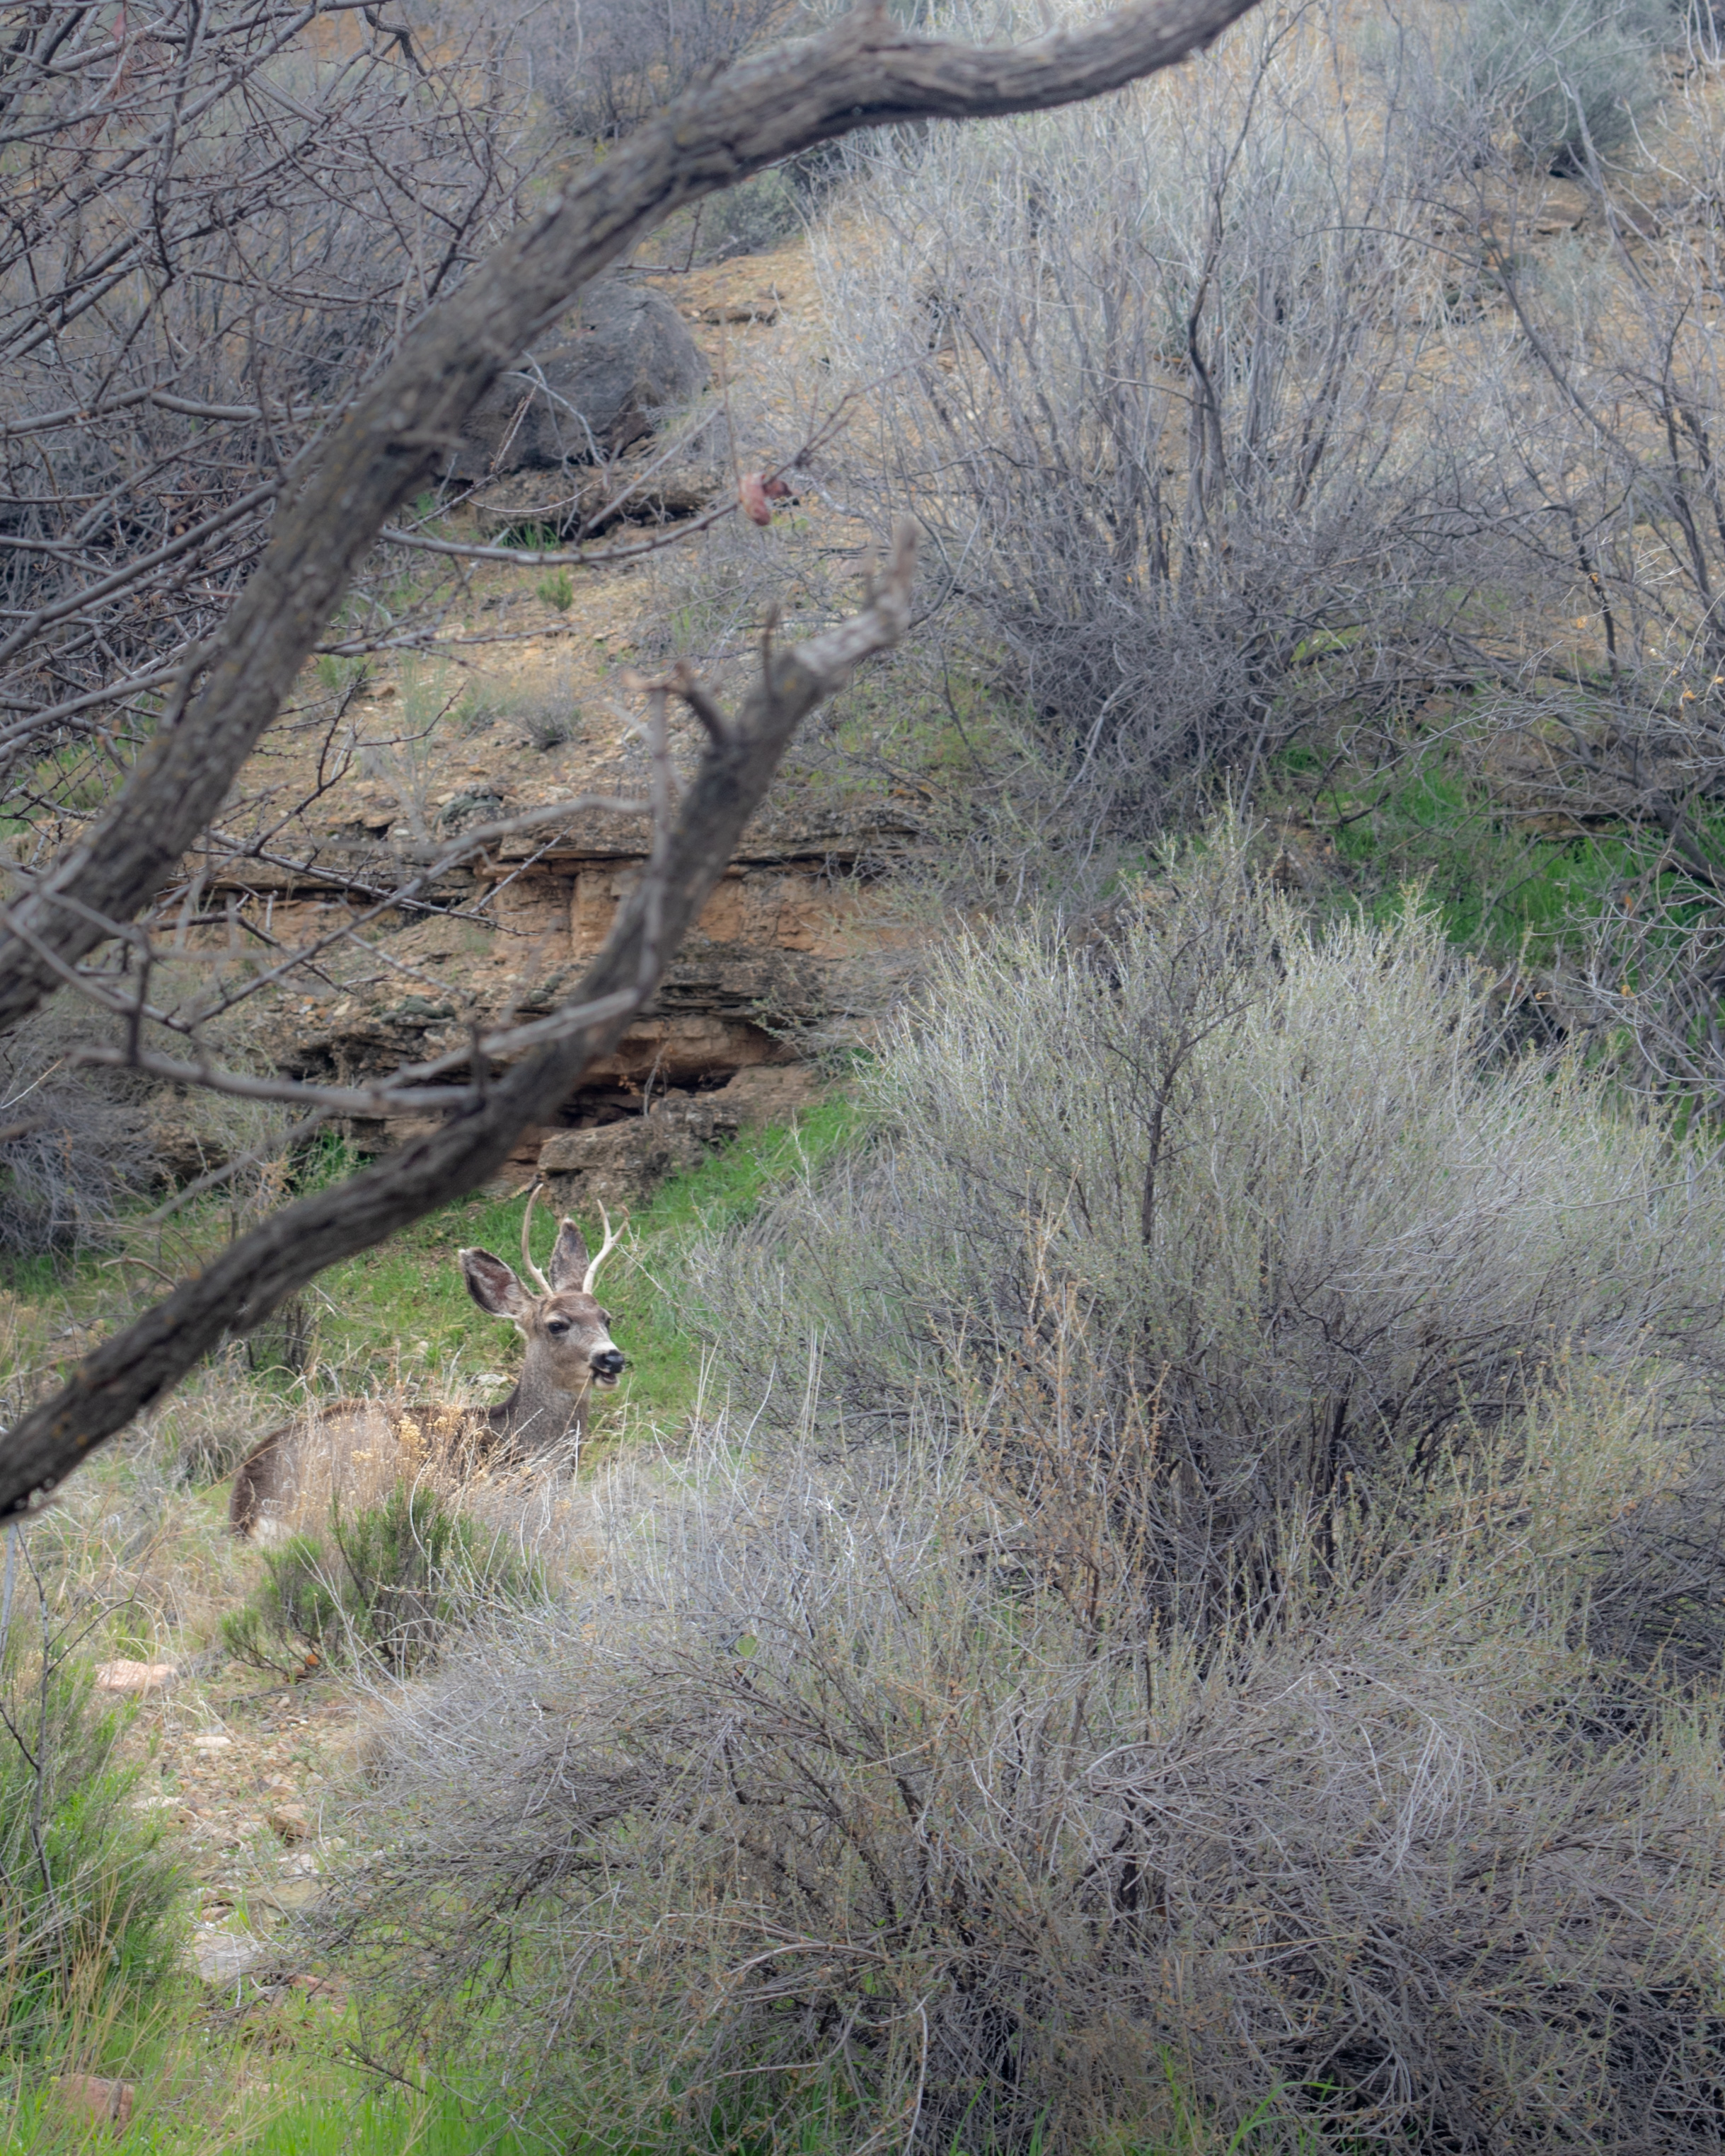 One of the three mule deers we saw